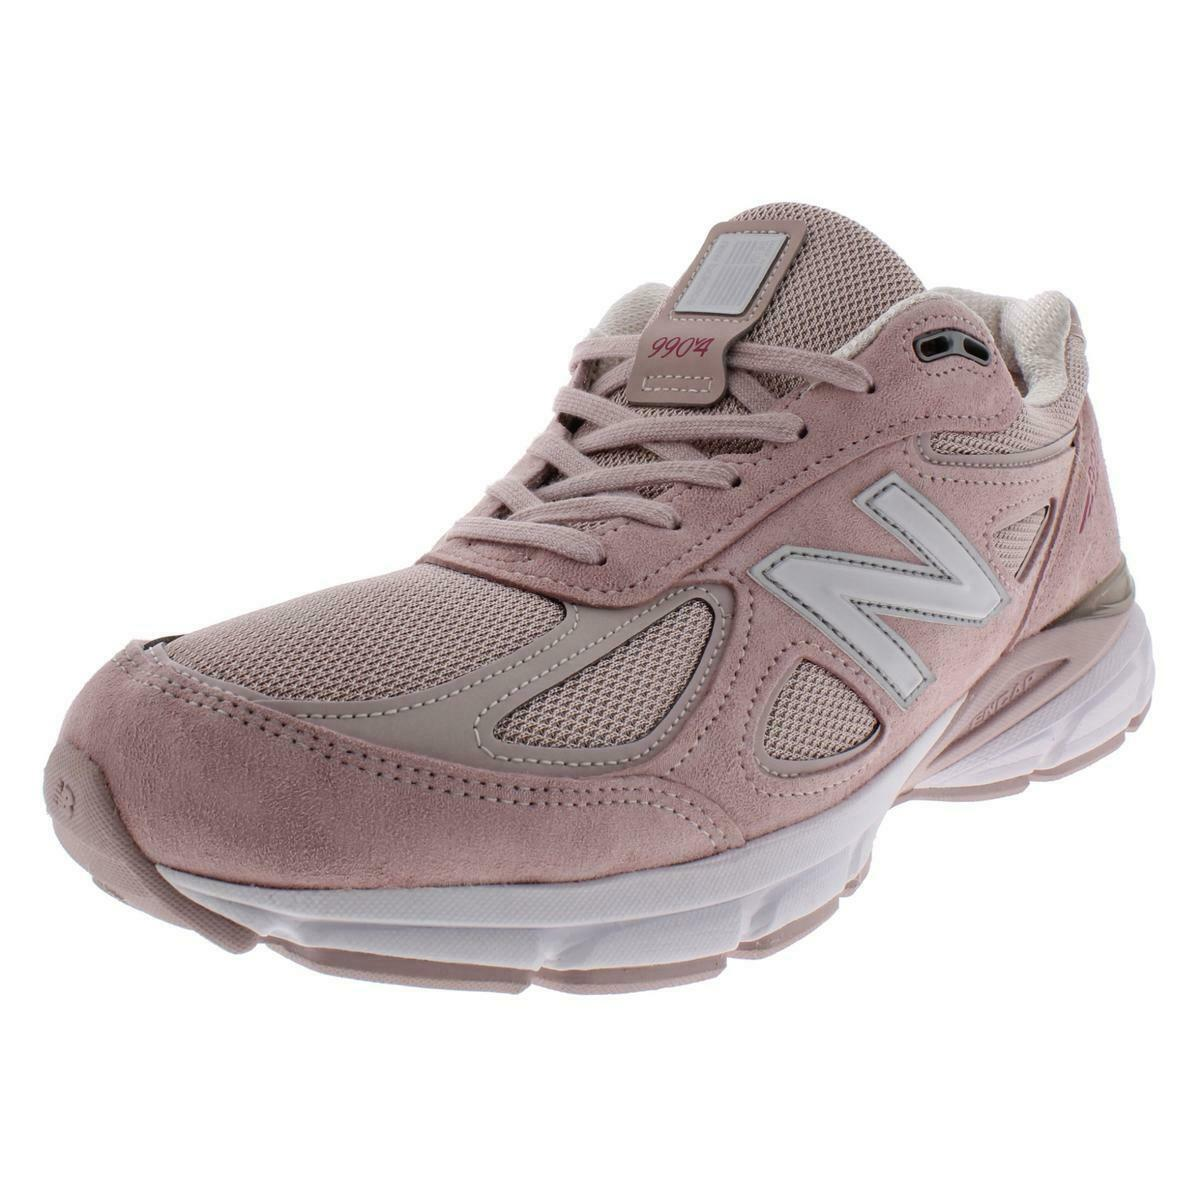 New Balance Mens Pink Suede Running shoes Athletic 11.5 Medium (D) BHFO 3536